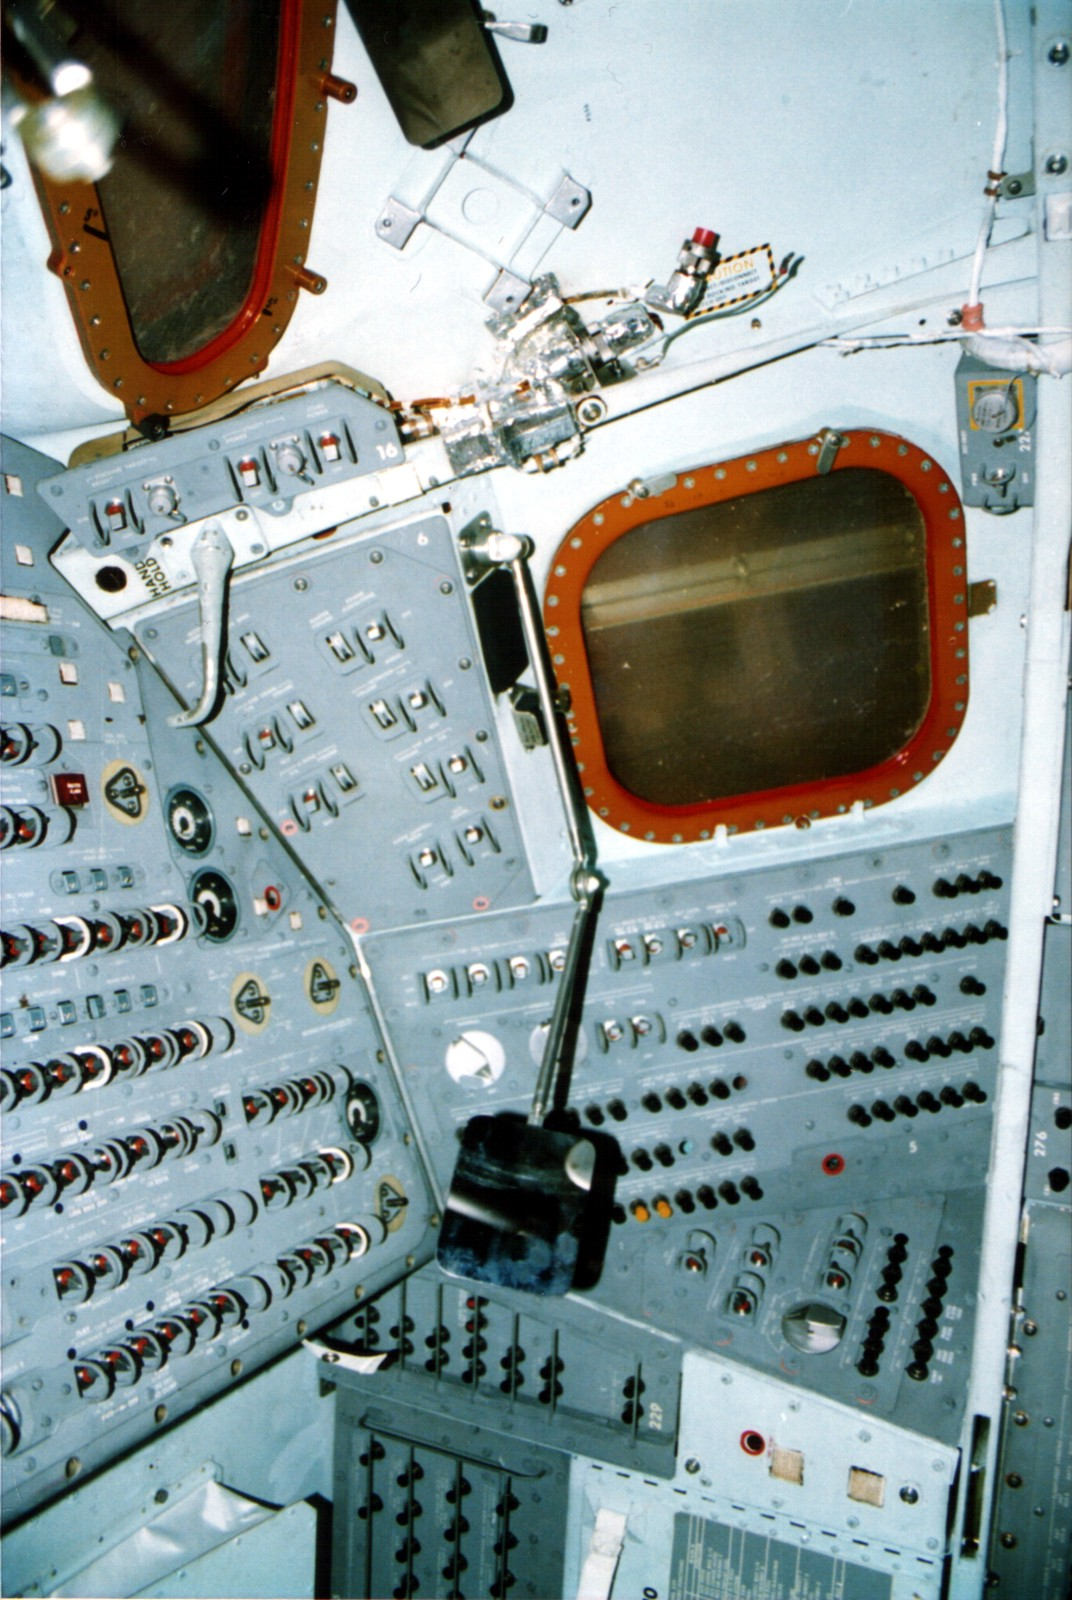 apollo capsule control panel - photo #14